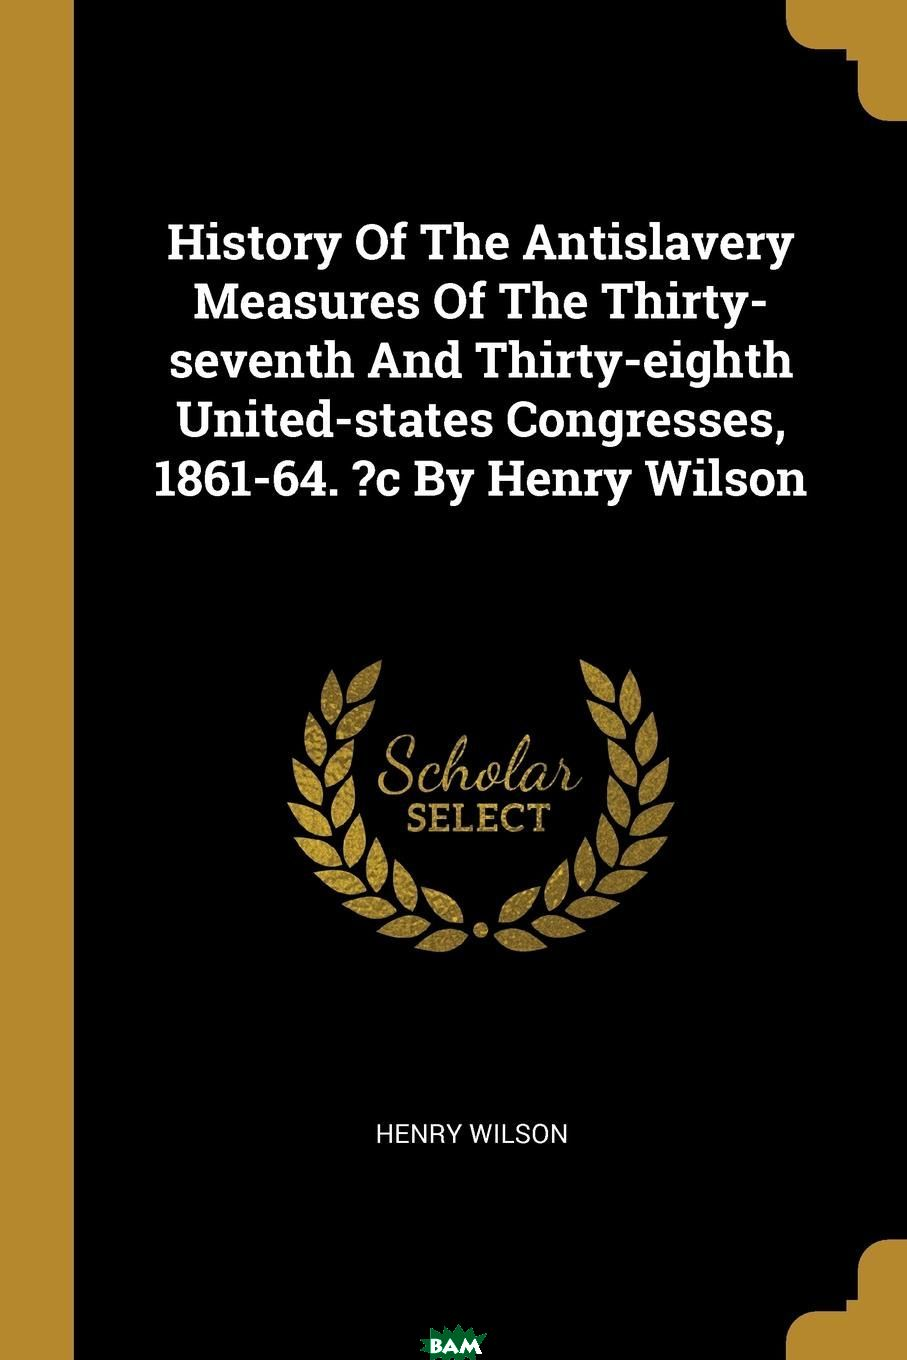 Купить History Of The Antislavery Measures Of The Thirty-seventh And Thirty-eighth United-states Congresses, 1861-64. .c By Henry Wilson, 9781011231461